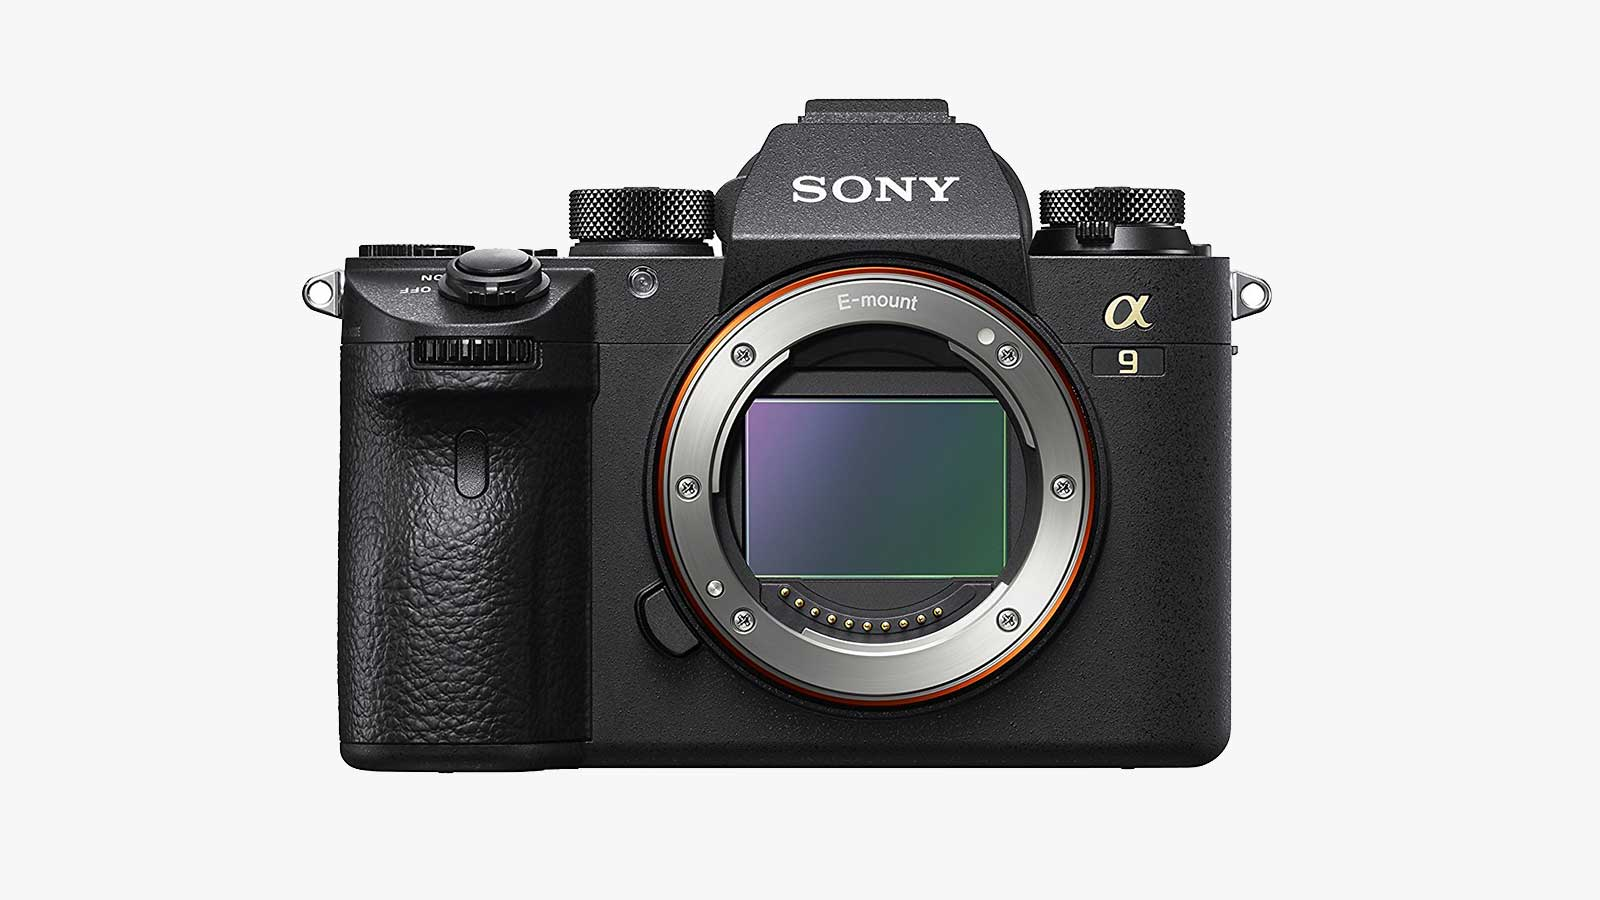 Sony a9 Mirrorless Full Frame DSLR Camera